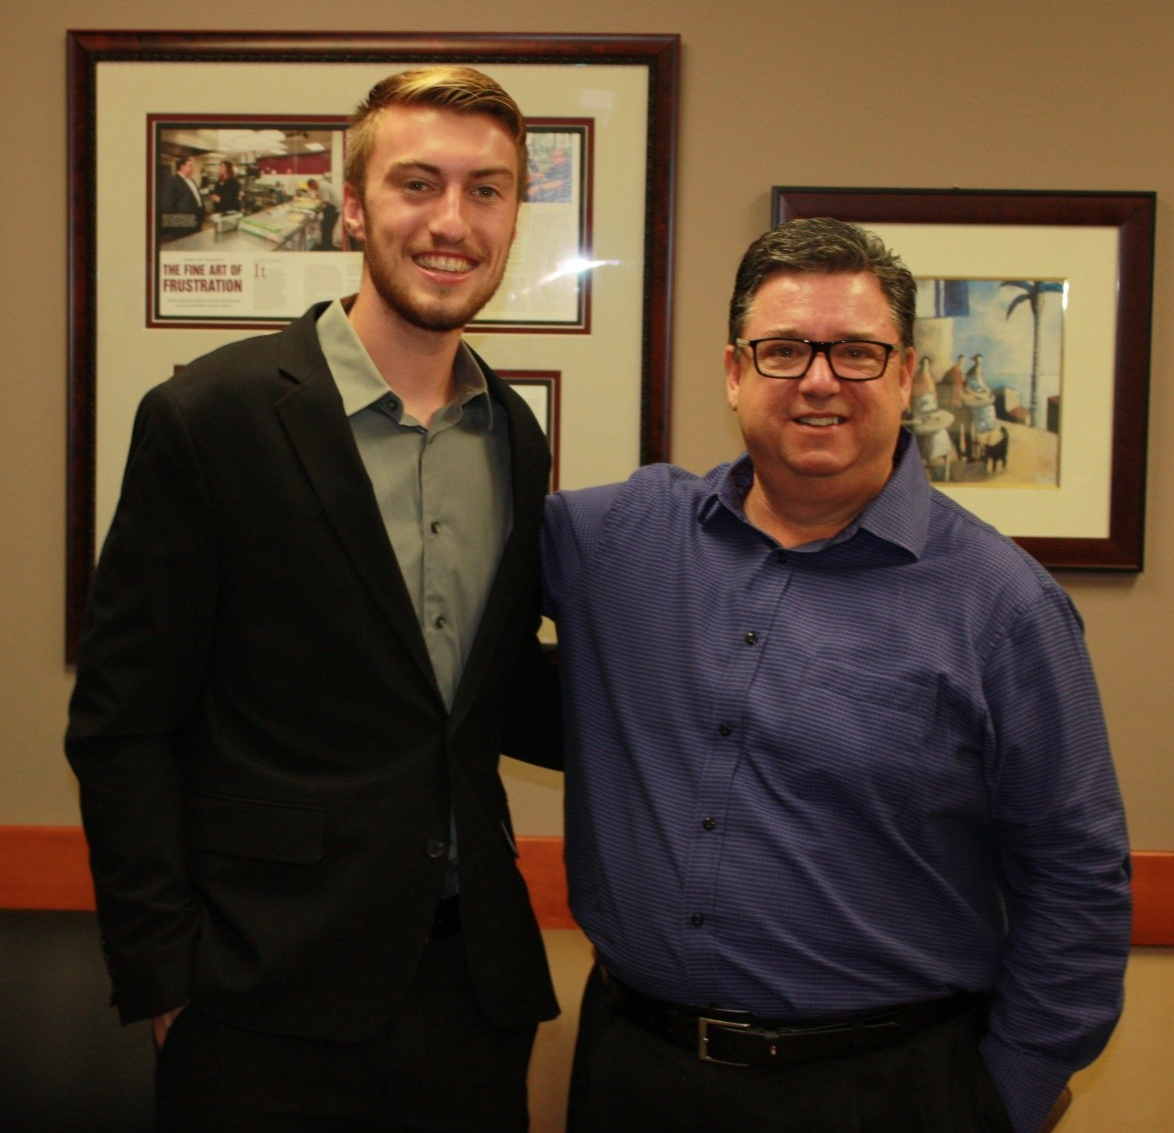 Jerry Conrey and Mihaylo College entrepreneurship student Tristan Starkweather pose in the Tustin office of Conrey Insurance Brokers.